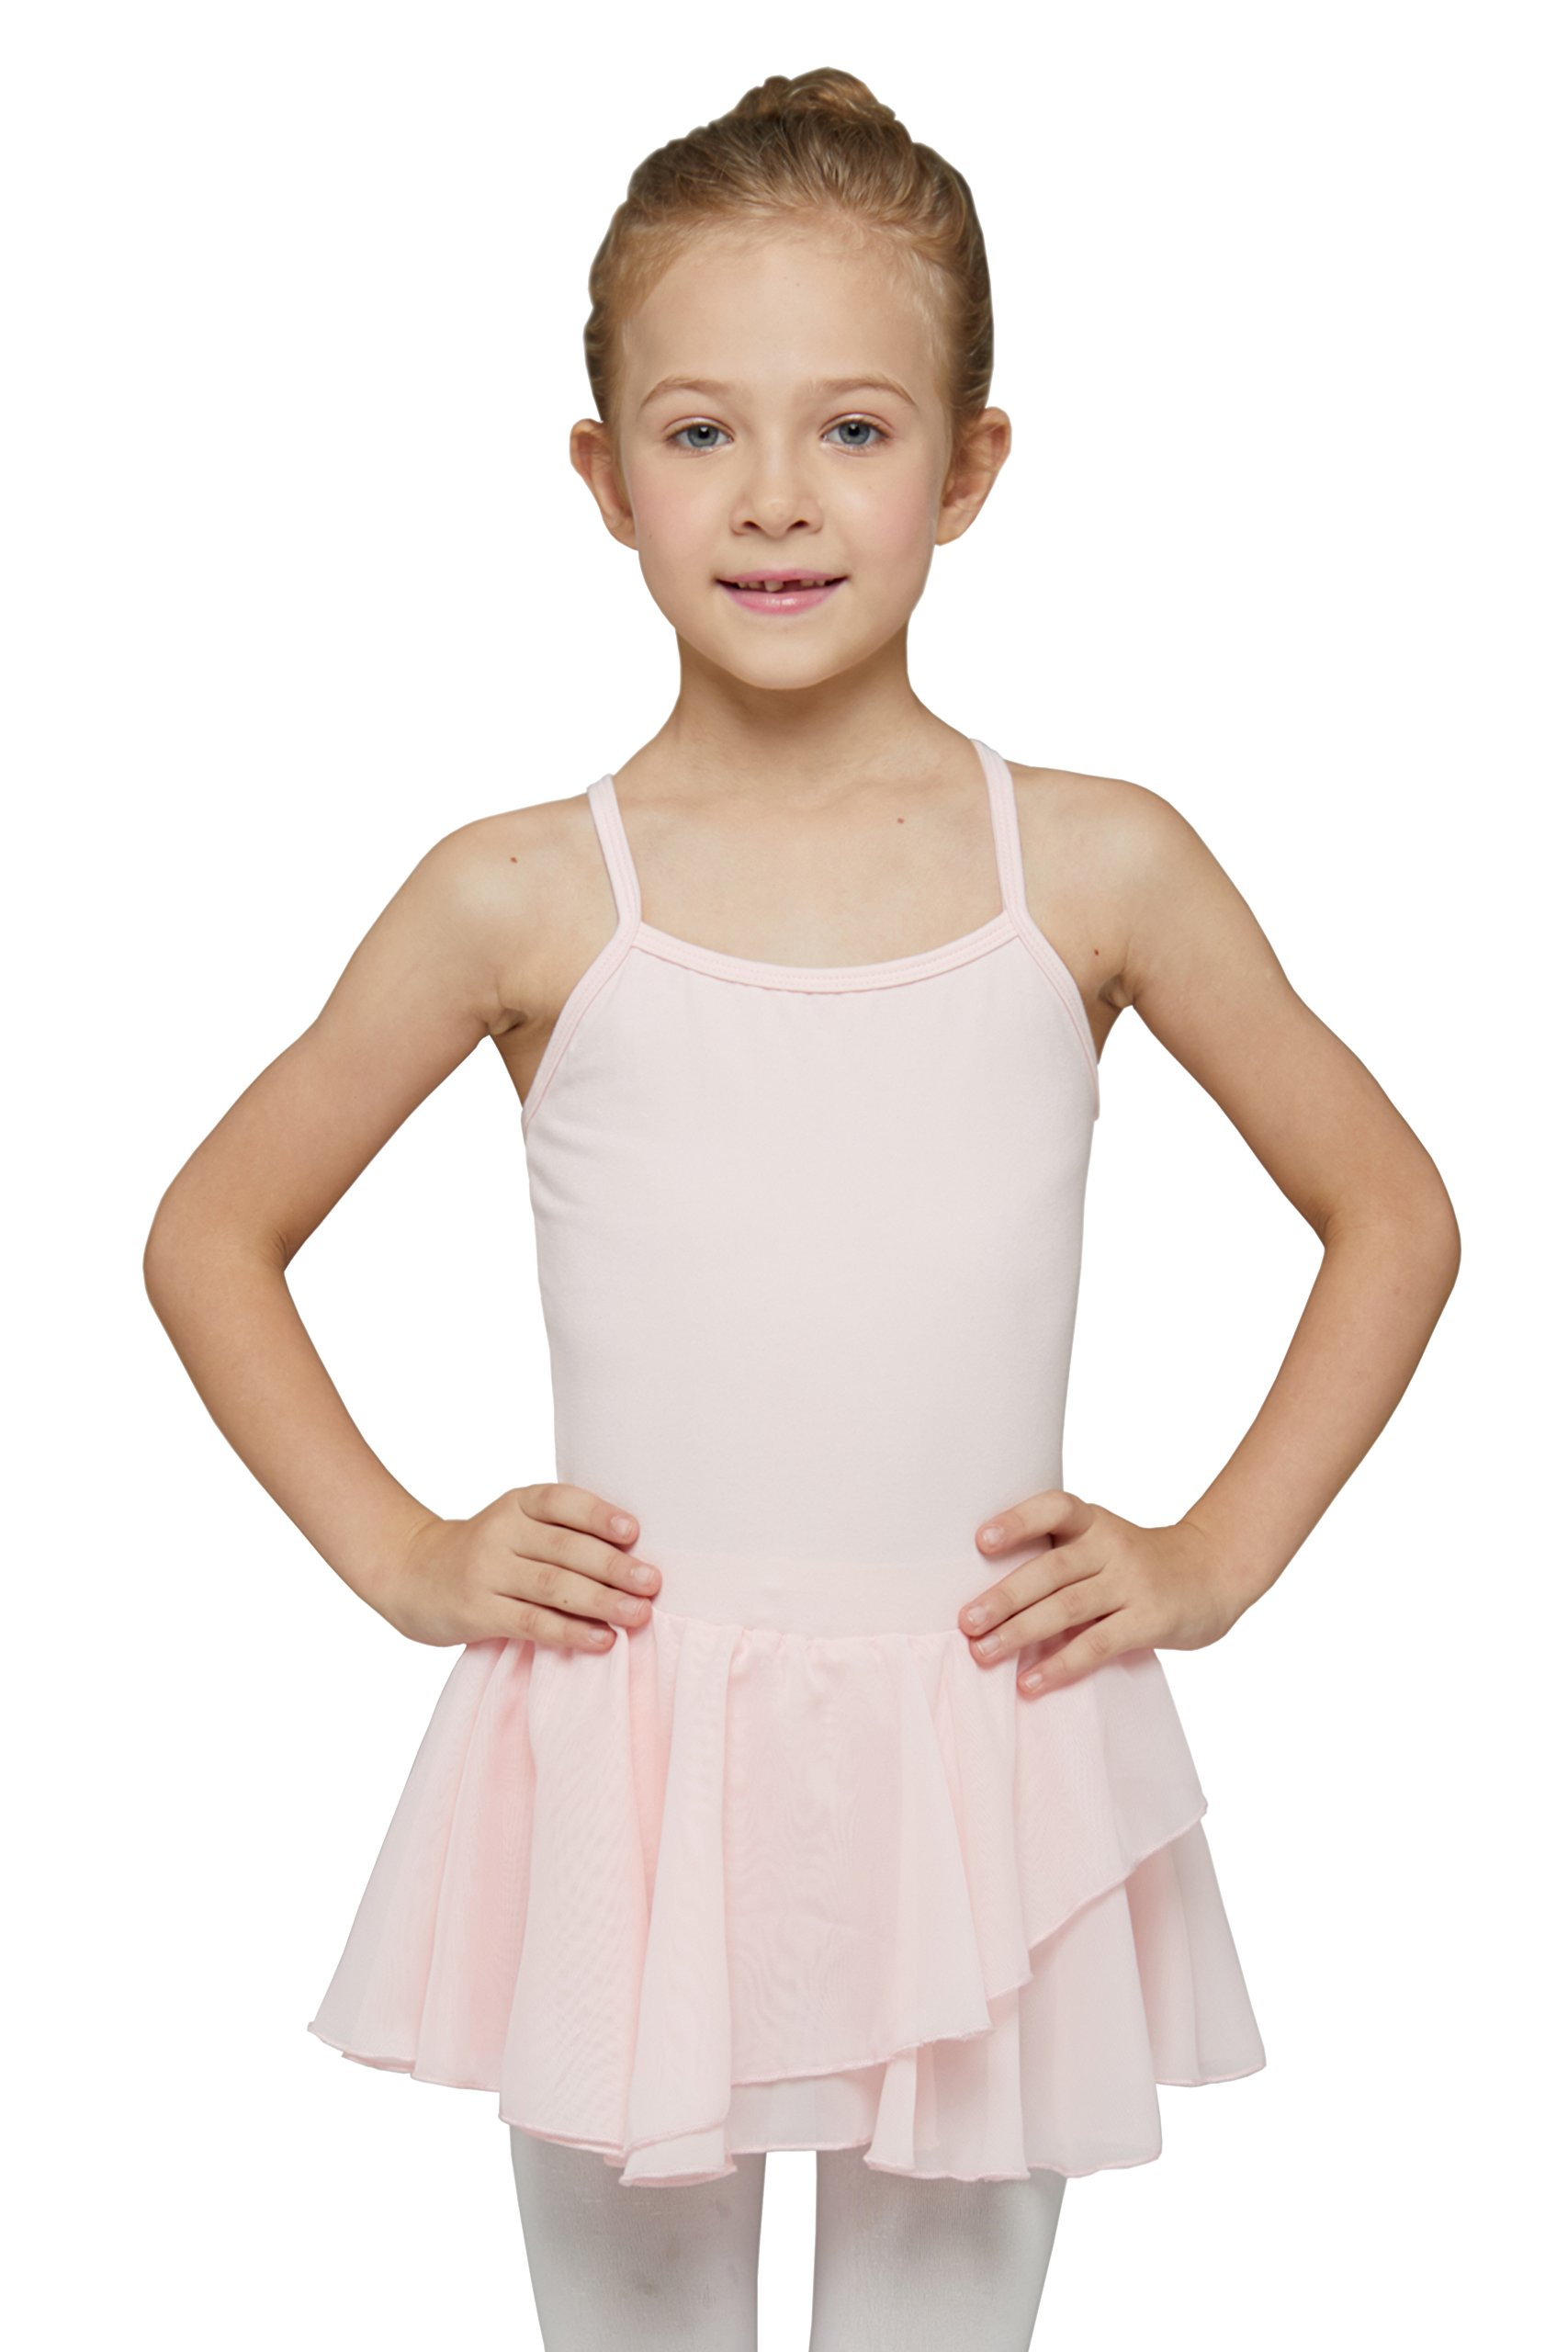 MdnMd Girls' Skirted Camisole Leotard (Tag 110) Age 2T - 4T, Ballet Pink